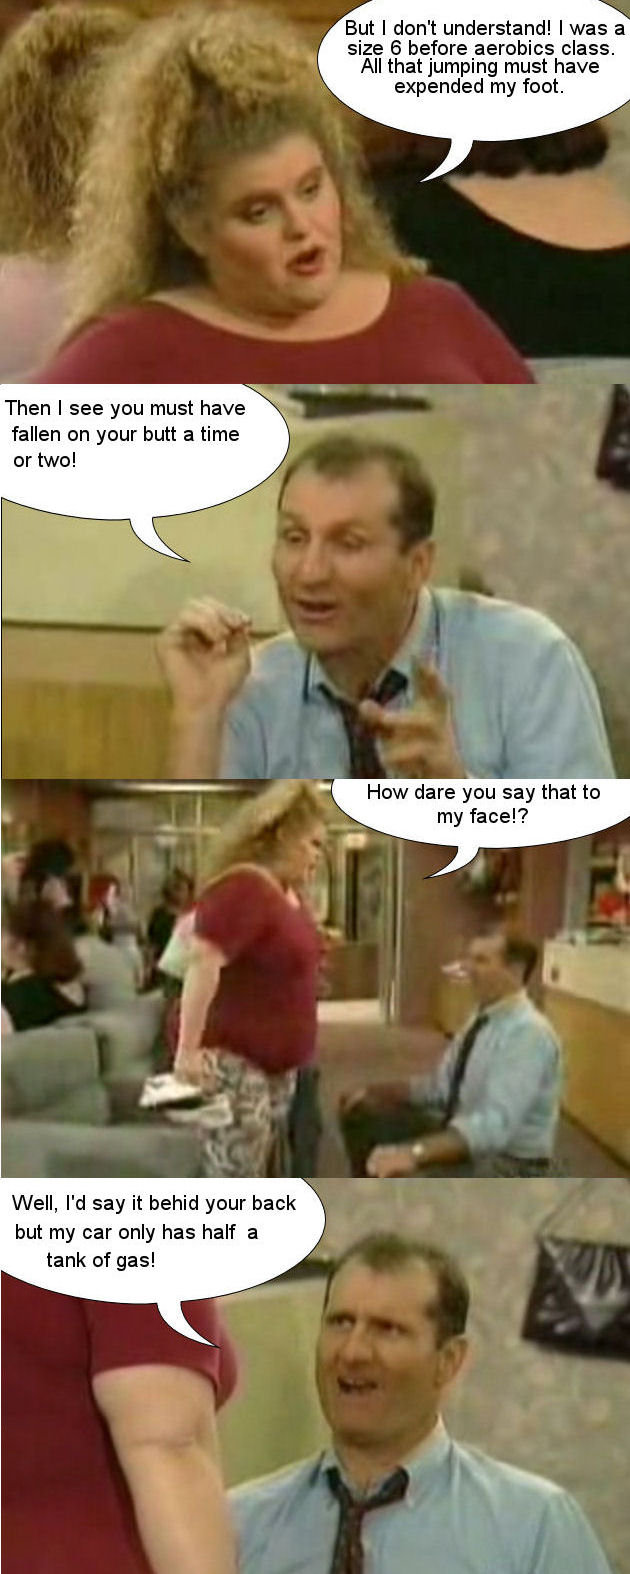 Best of Al Bundy #1. There is one scene, I'll make more if you like it.<br /> (btw sorry if i made some grammar mistakes)<br /> No.2: <br /> &